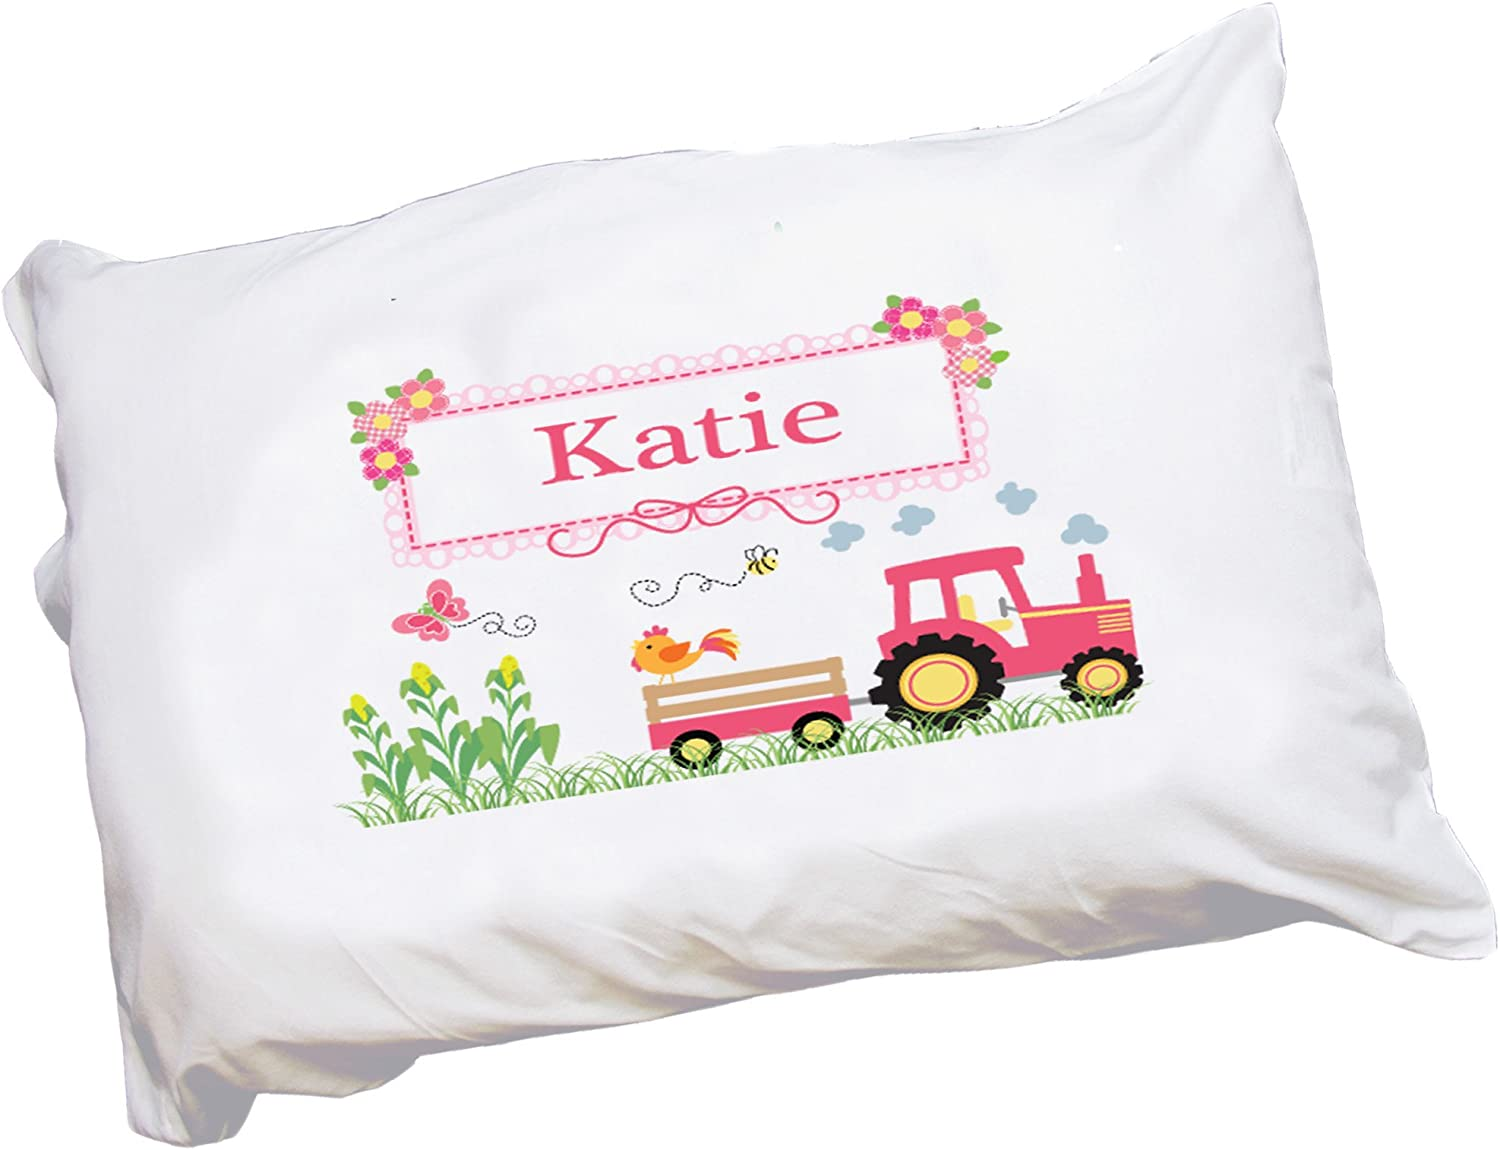 My Bambino Personalized Pillowcase with Pink Tractor Design